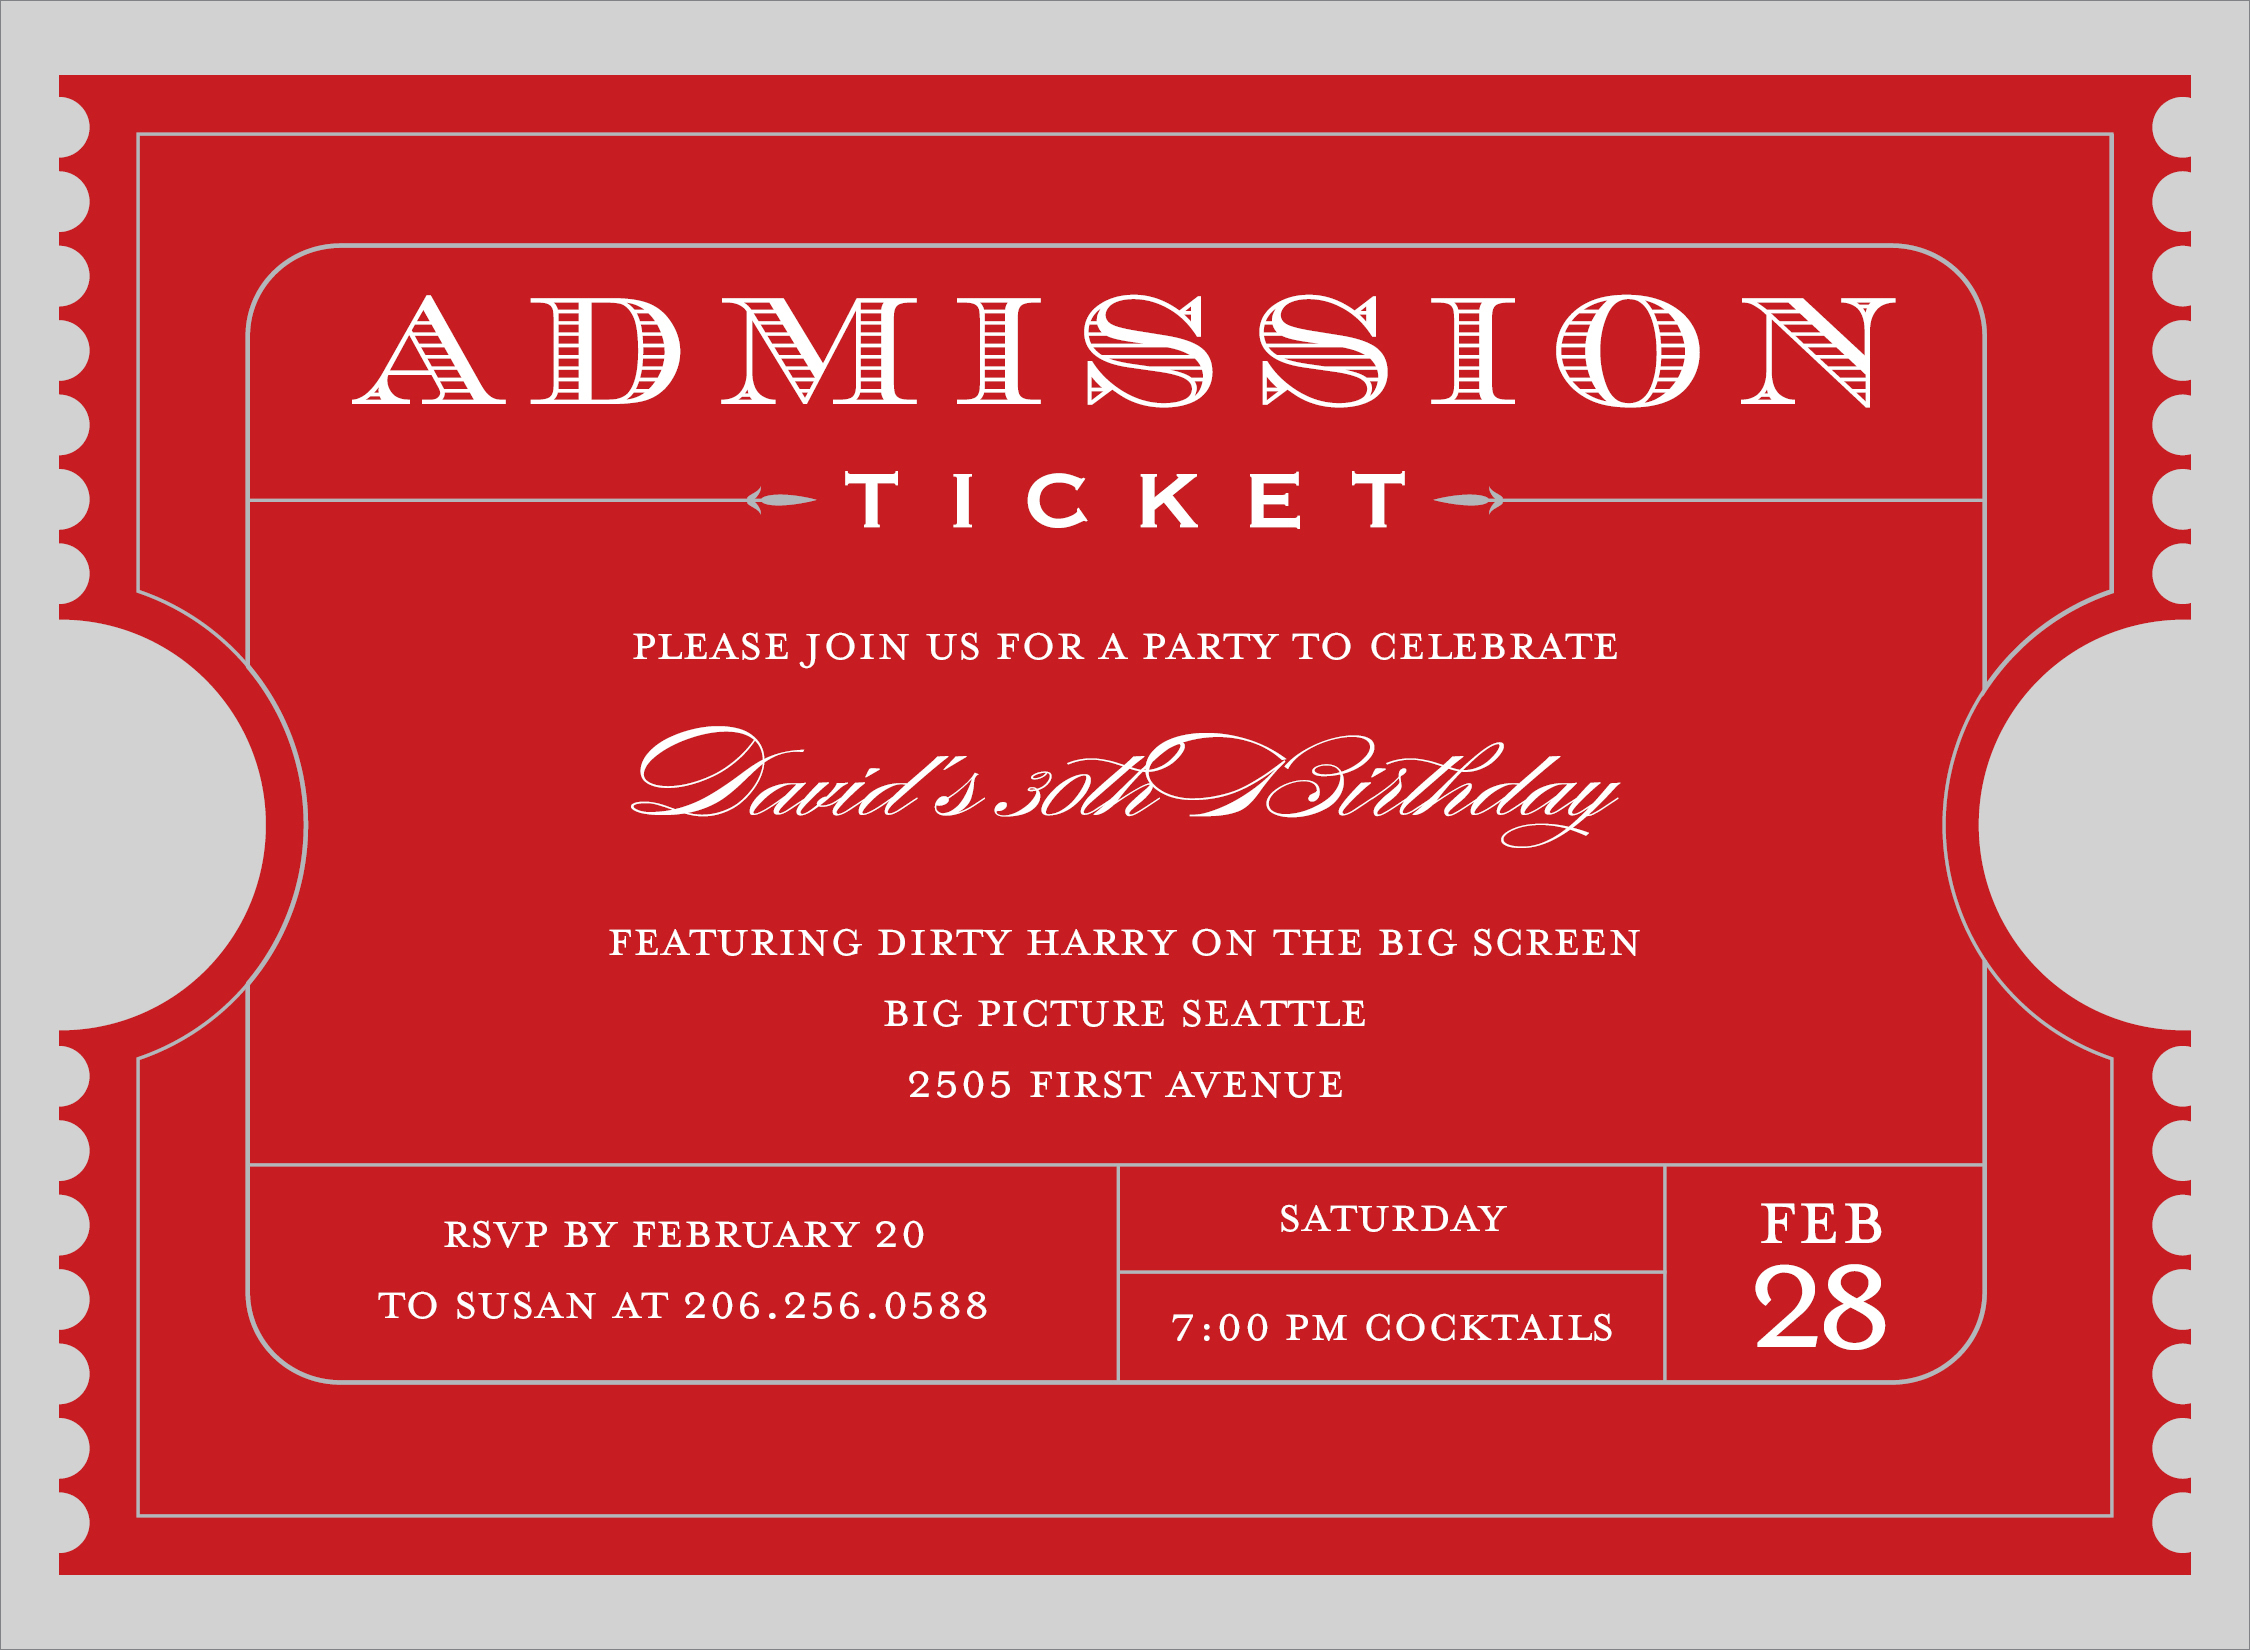 Quick view not id 1117 admission ticket red invitation admission ticket red invitation this admission ticket is a fun and unique way to invite stopboris Images